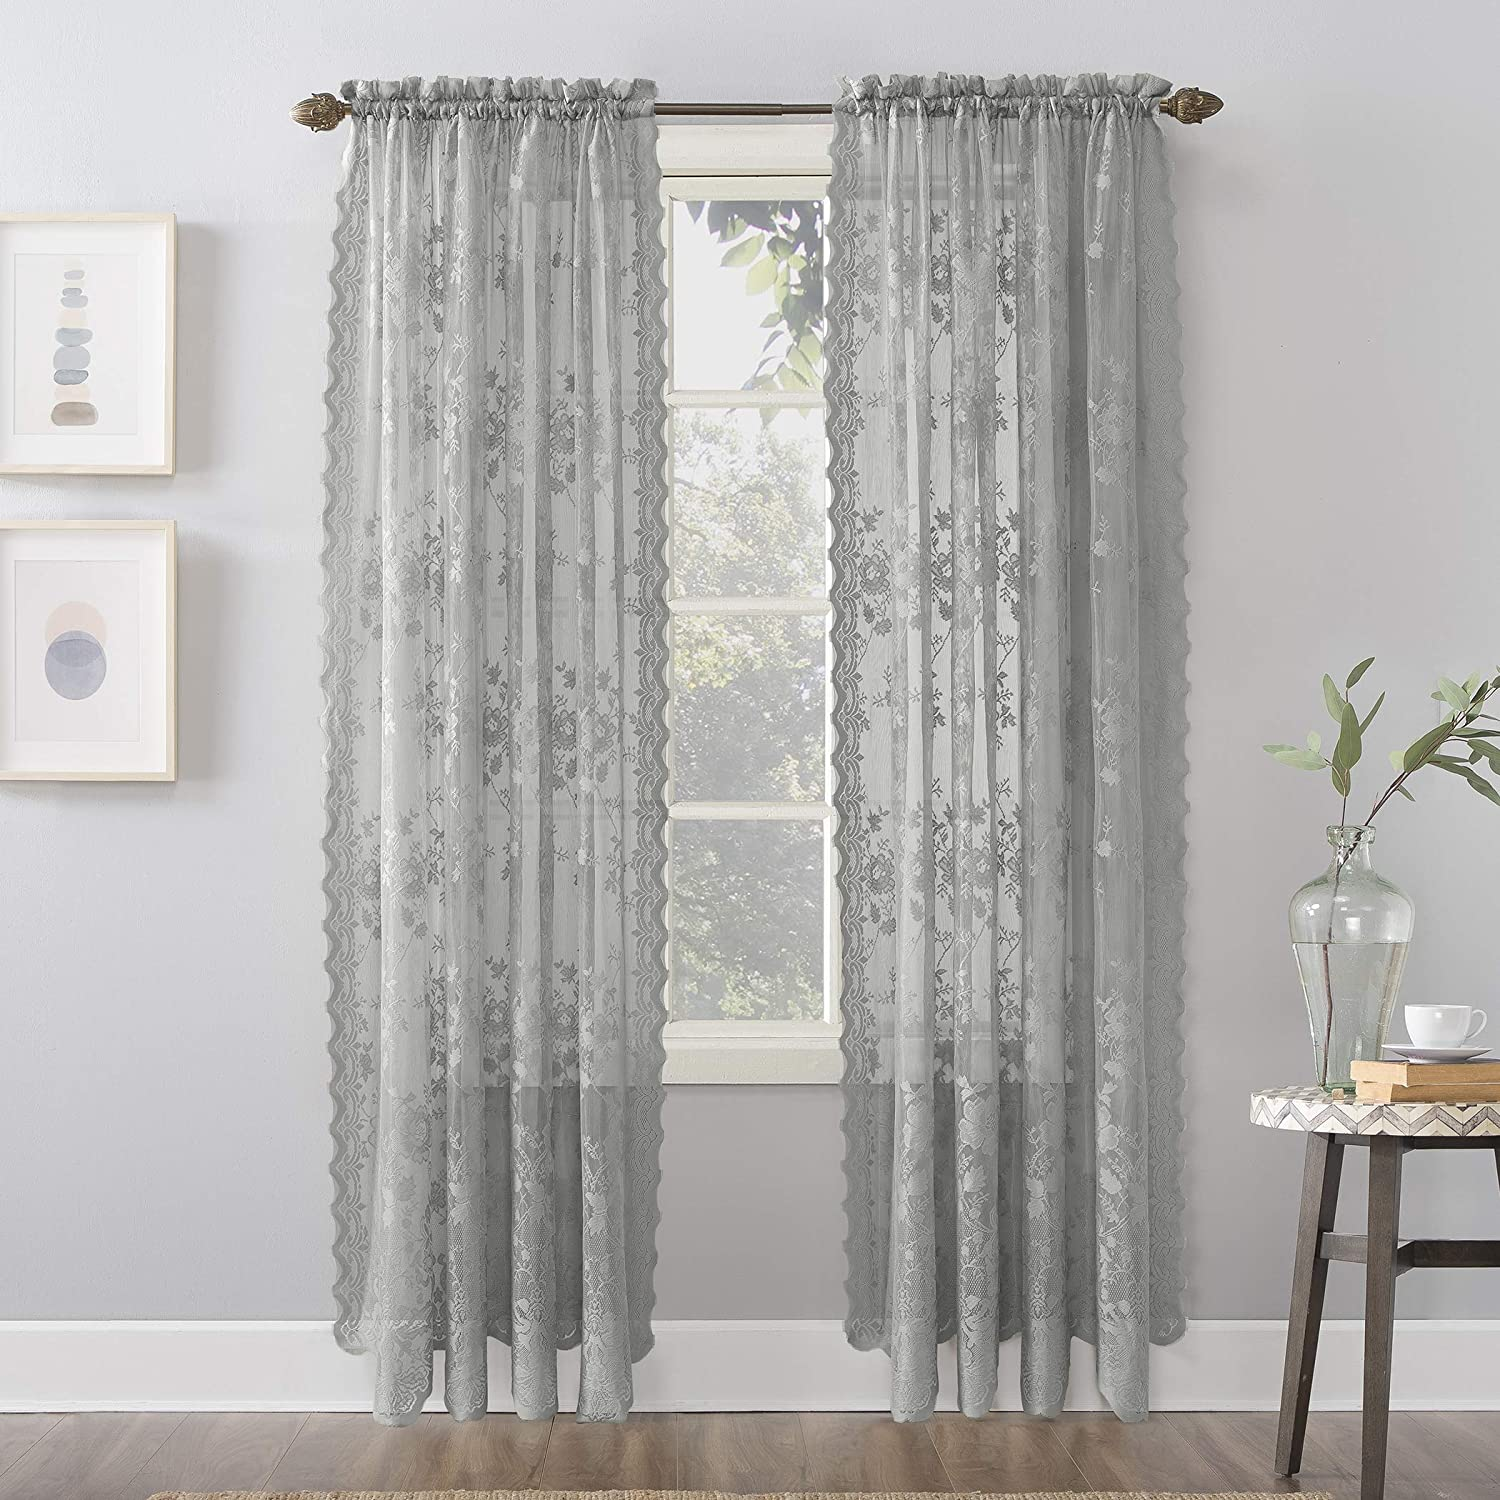 Amazon Com No 918 Alison Floral Lace Sheer Rod Pocket Curtain Panel 58 X 63 Dove Gray Home Kitchen